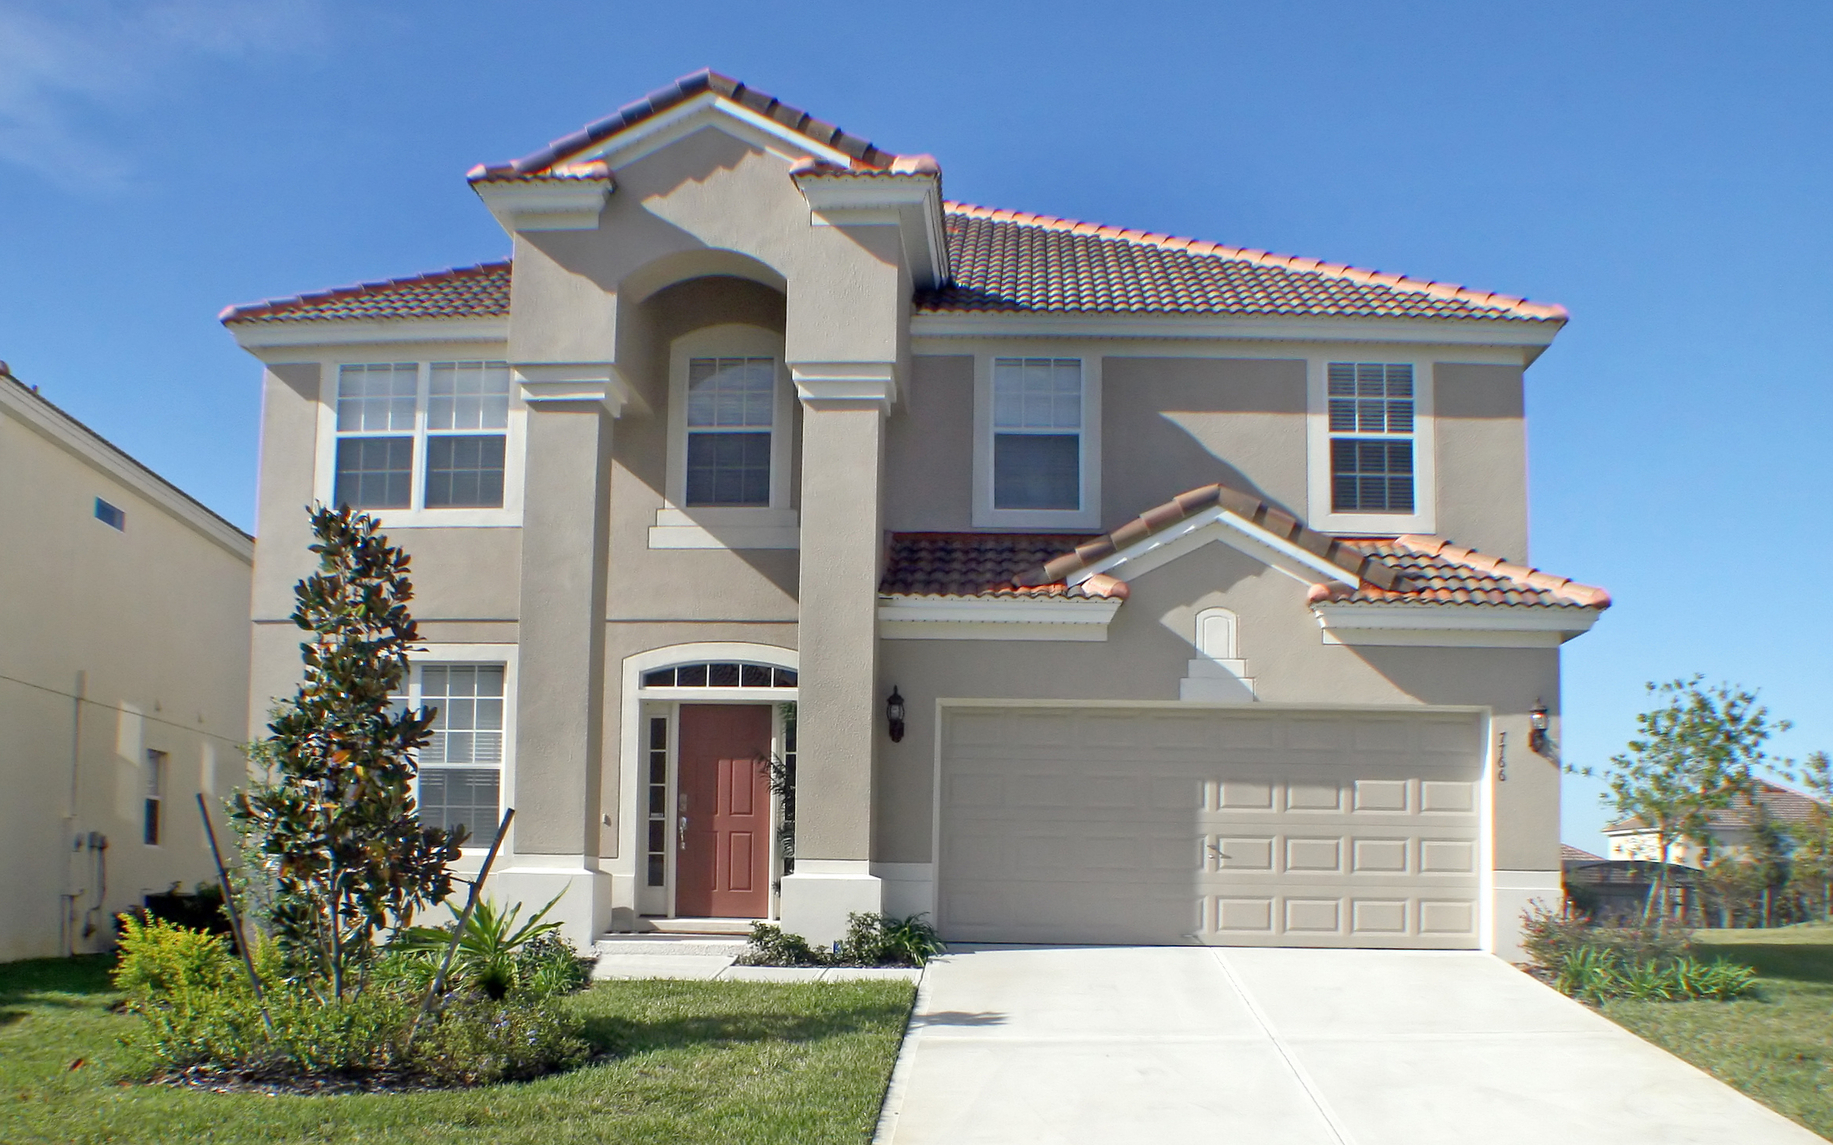 Central Florida Open Houses Orlando Clermont Homes For Sale Real Estate Homes For Sale In